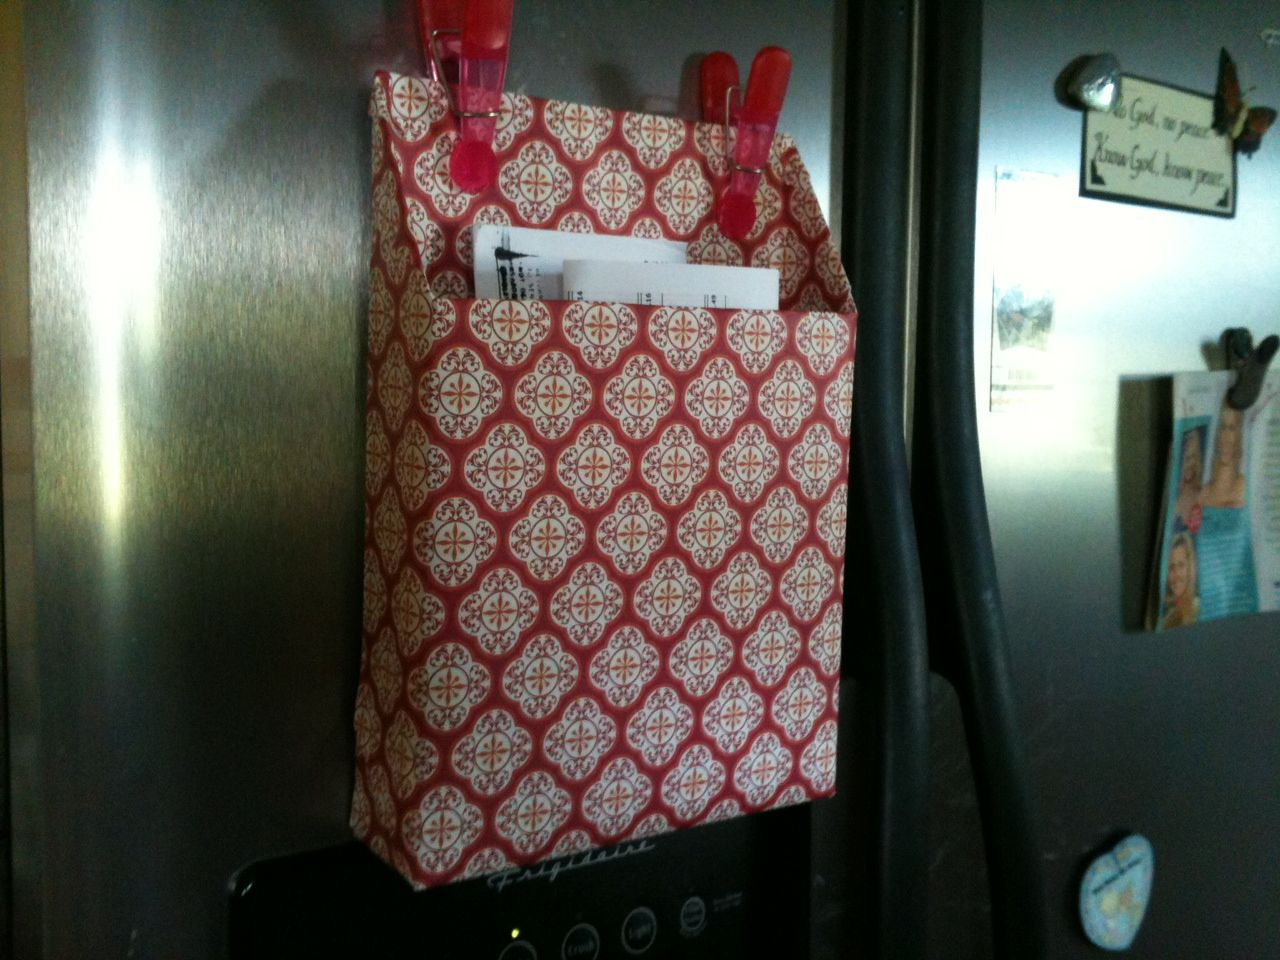 Cereal box covered in scrapbook paper with magnets on the side of the fridge.  I do love to organize!